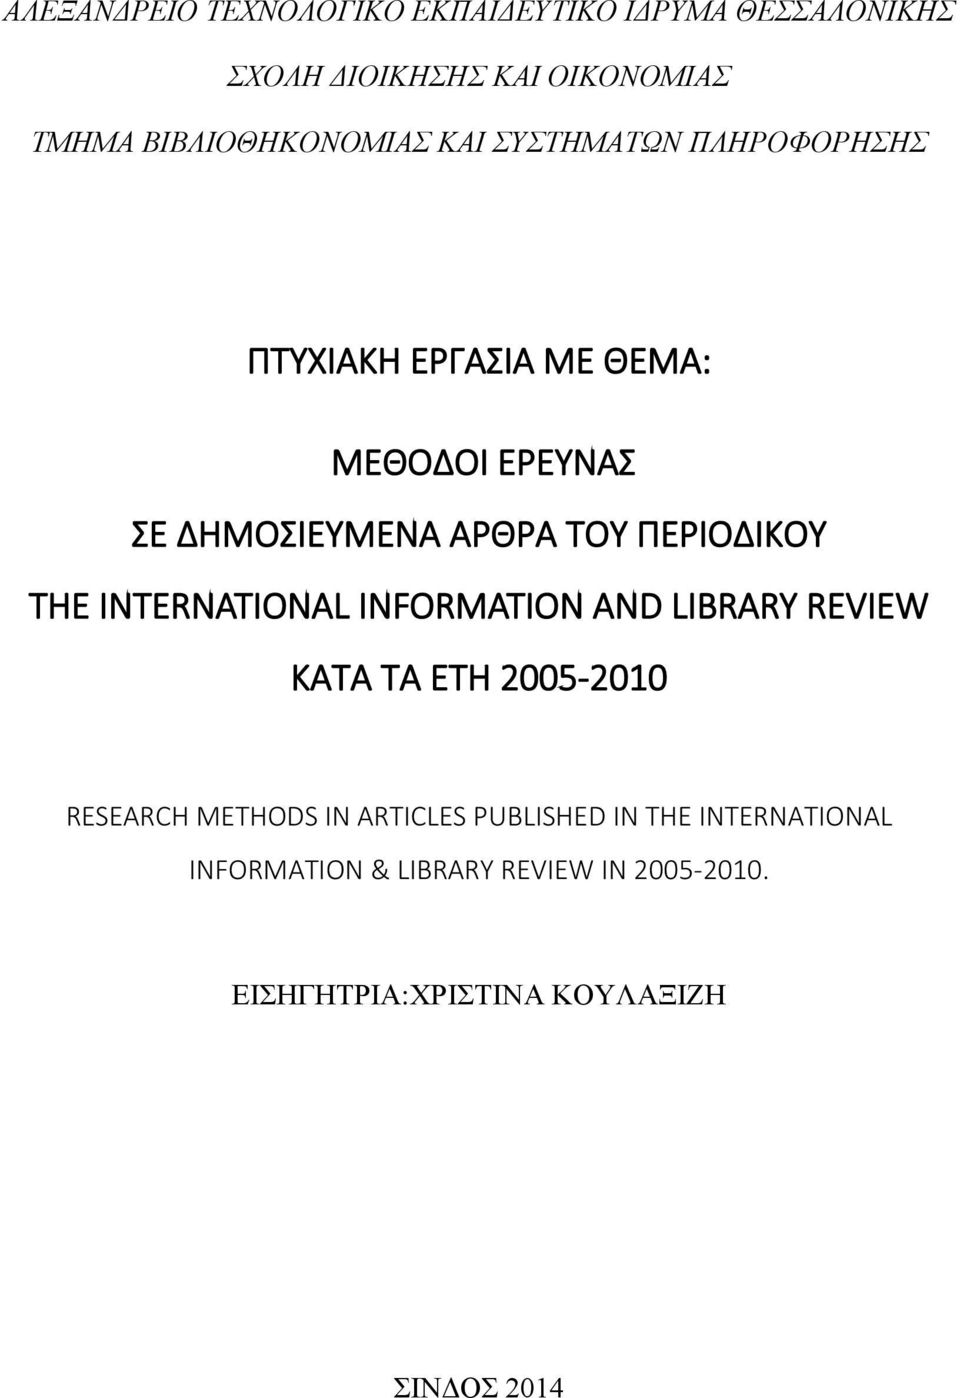 ΤΟΥ ΠΕΡΙΟΔΙΚΟΥ THE INTERNATIONAL INFORMATION AND LIBRARY REVIEW ΚΑΤΑ ΤΑ ΕΤΗ 2005-2010 RESEARCH METHODS IN